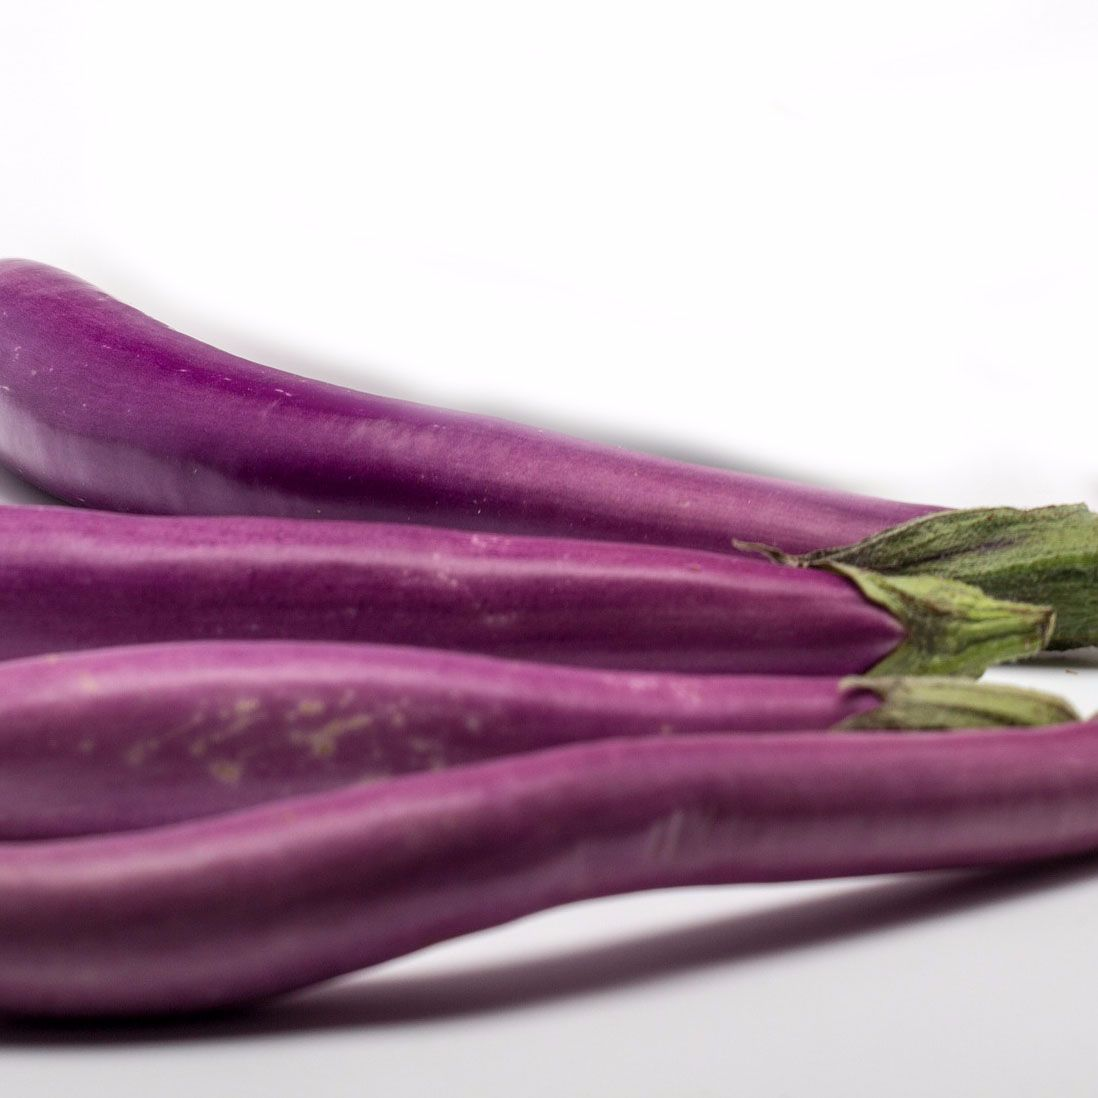 Aubergine 'Farmers Long' Seeds